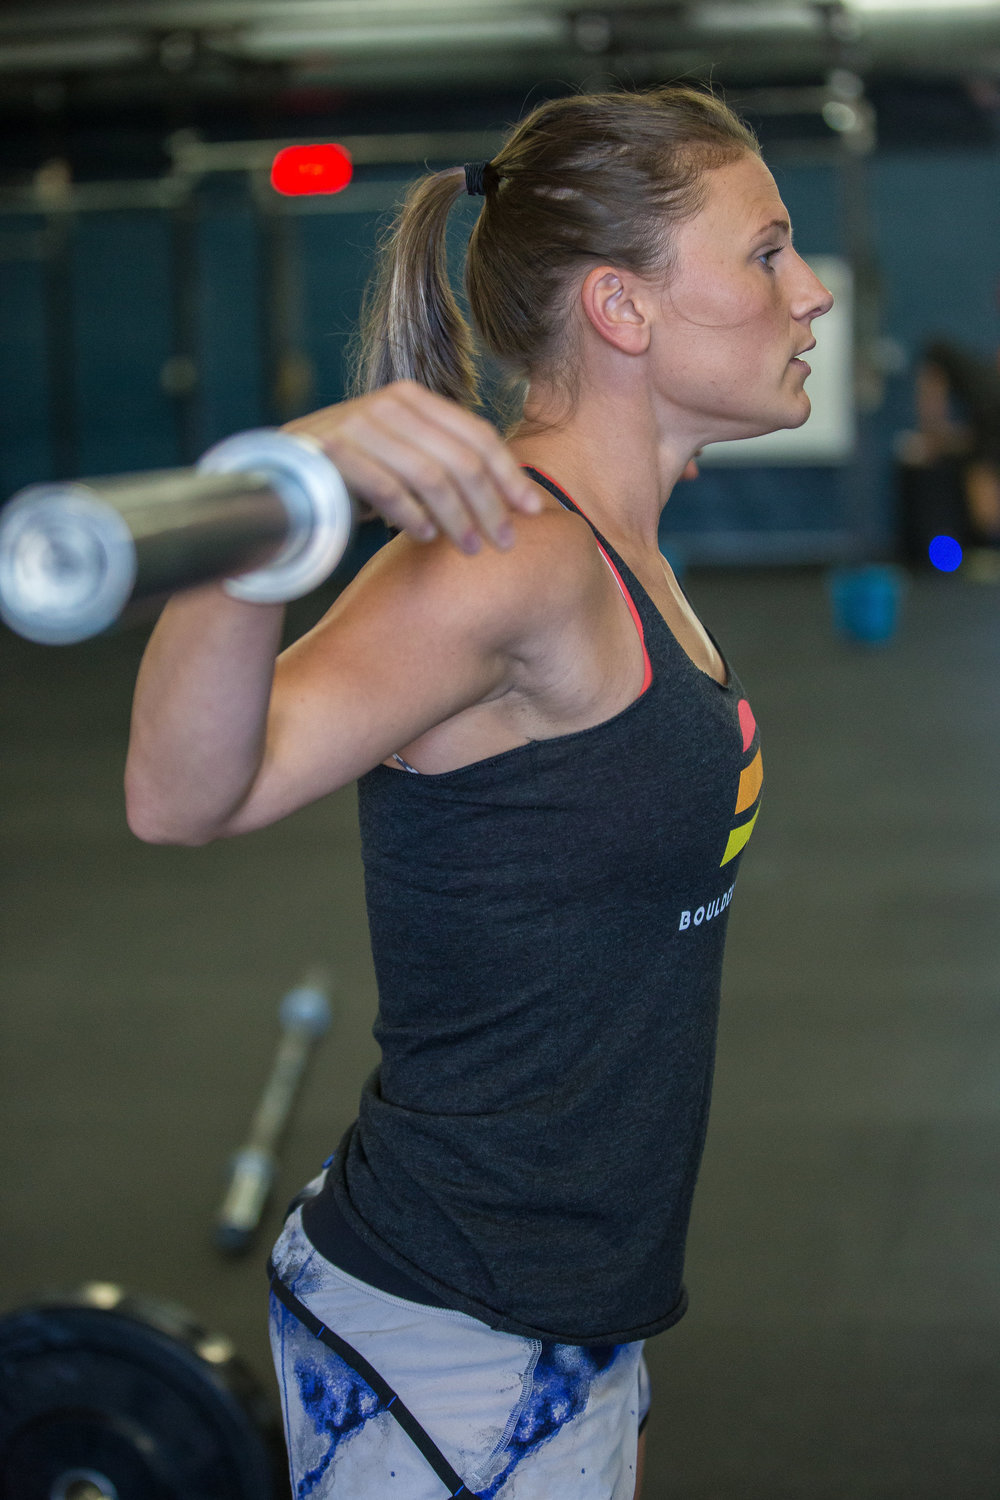 Emily Haury, Coach - CrossFit Level 1CrossFit Level 2USAW Level 1 Sports Performance Coach